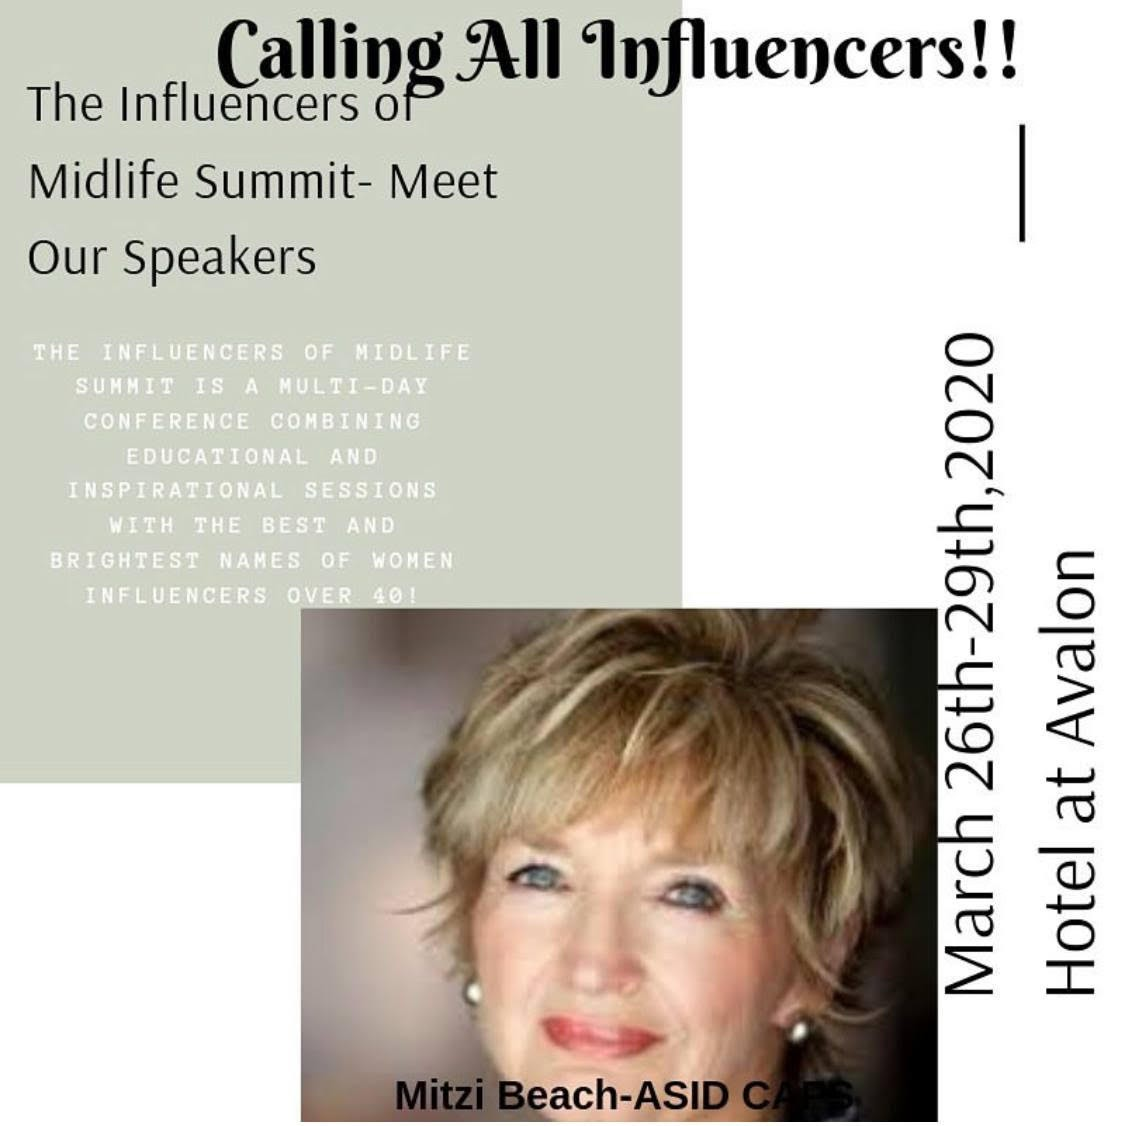 Calling all influencers